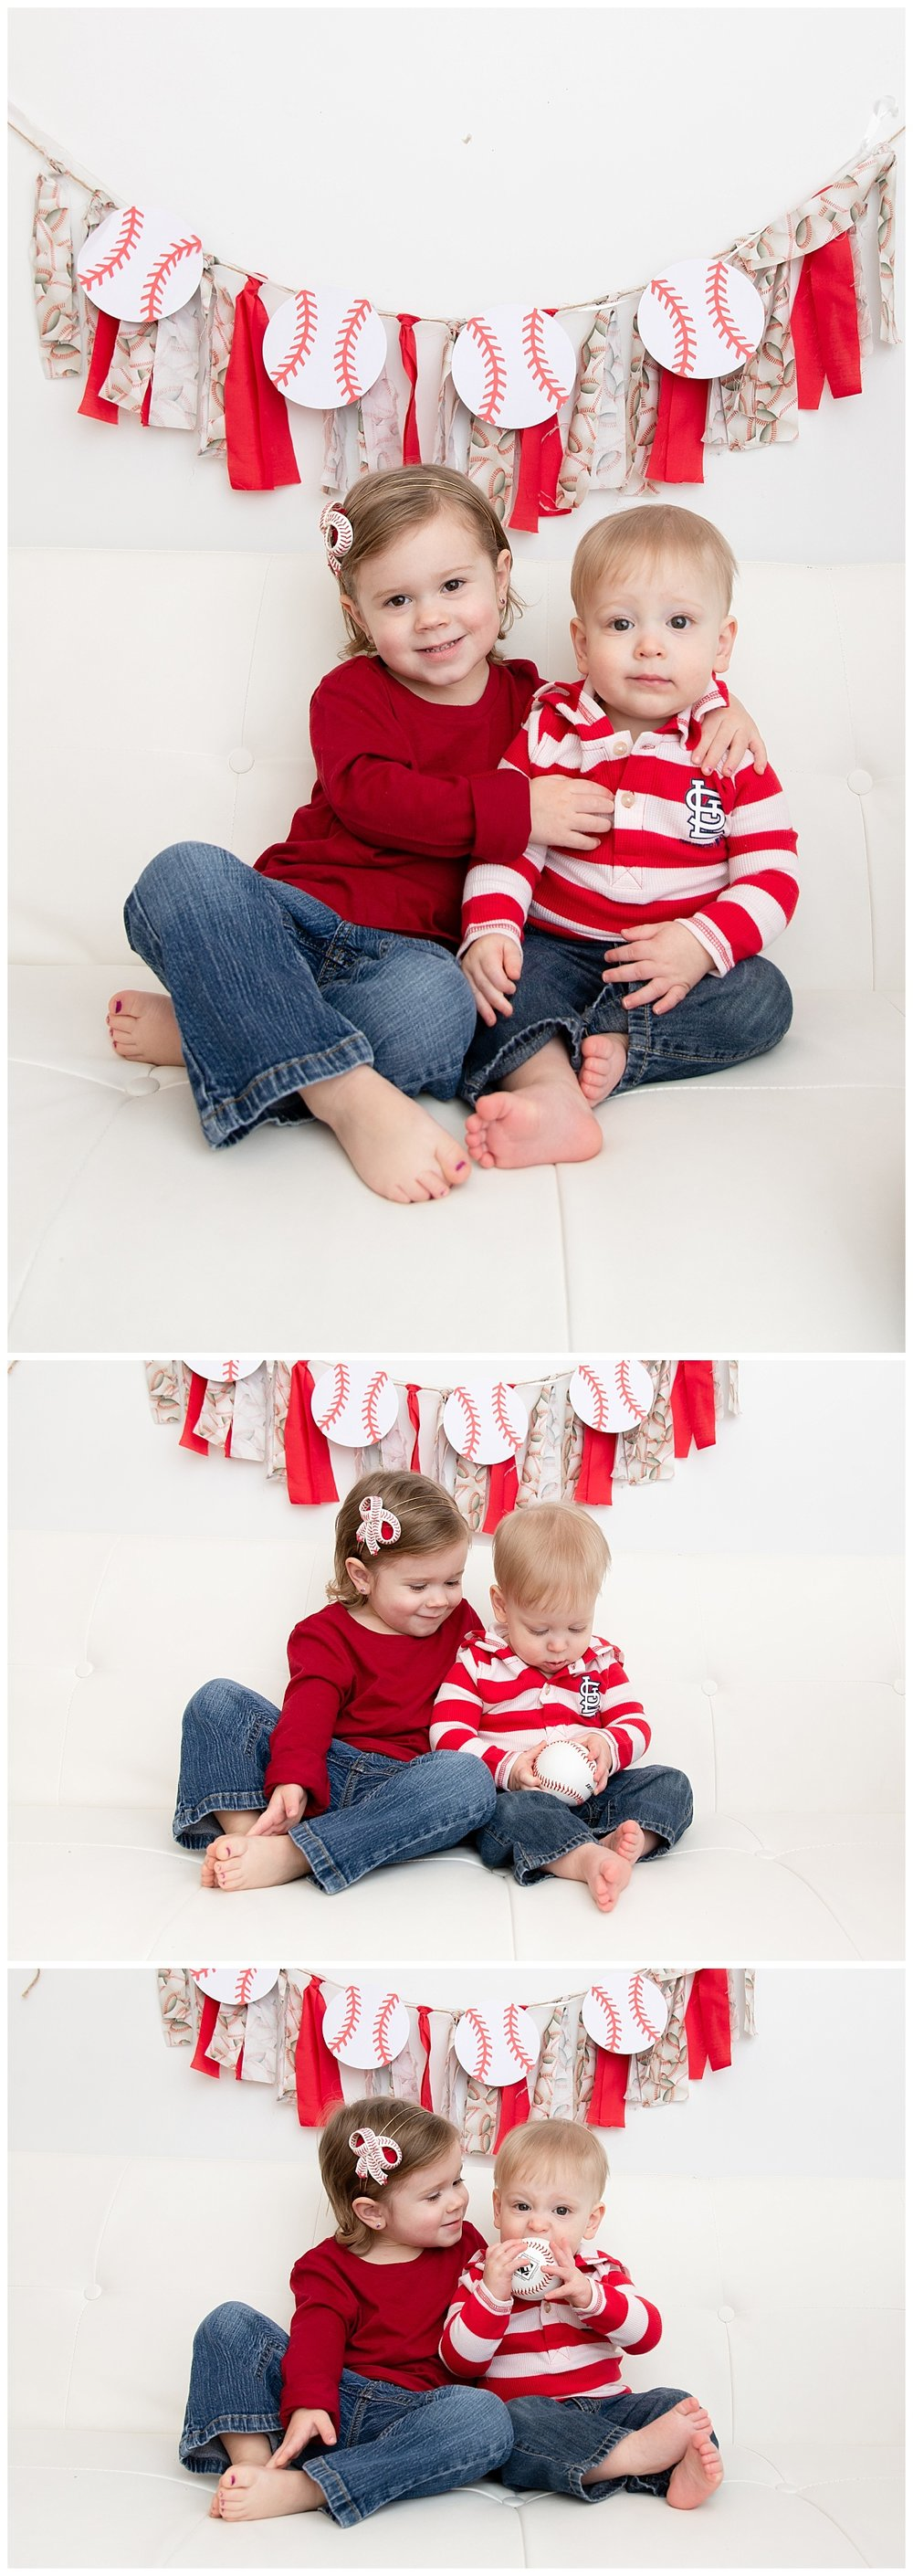 st-louis-family-photographer-st-louis-cardinals-family-pictures-big-sister-and-little-brother.jpg